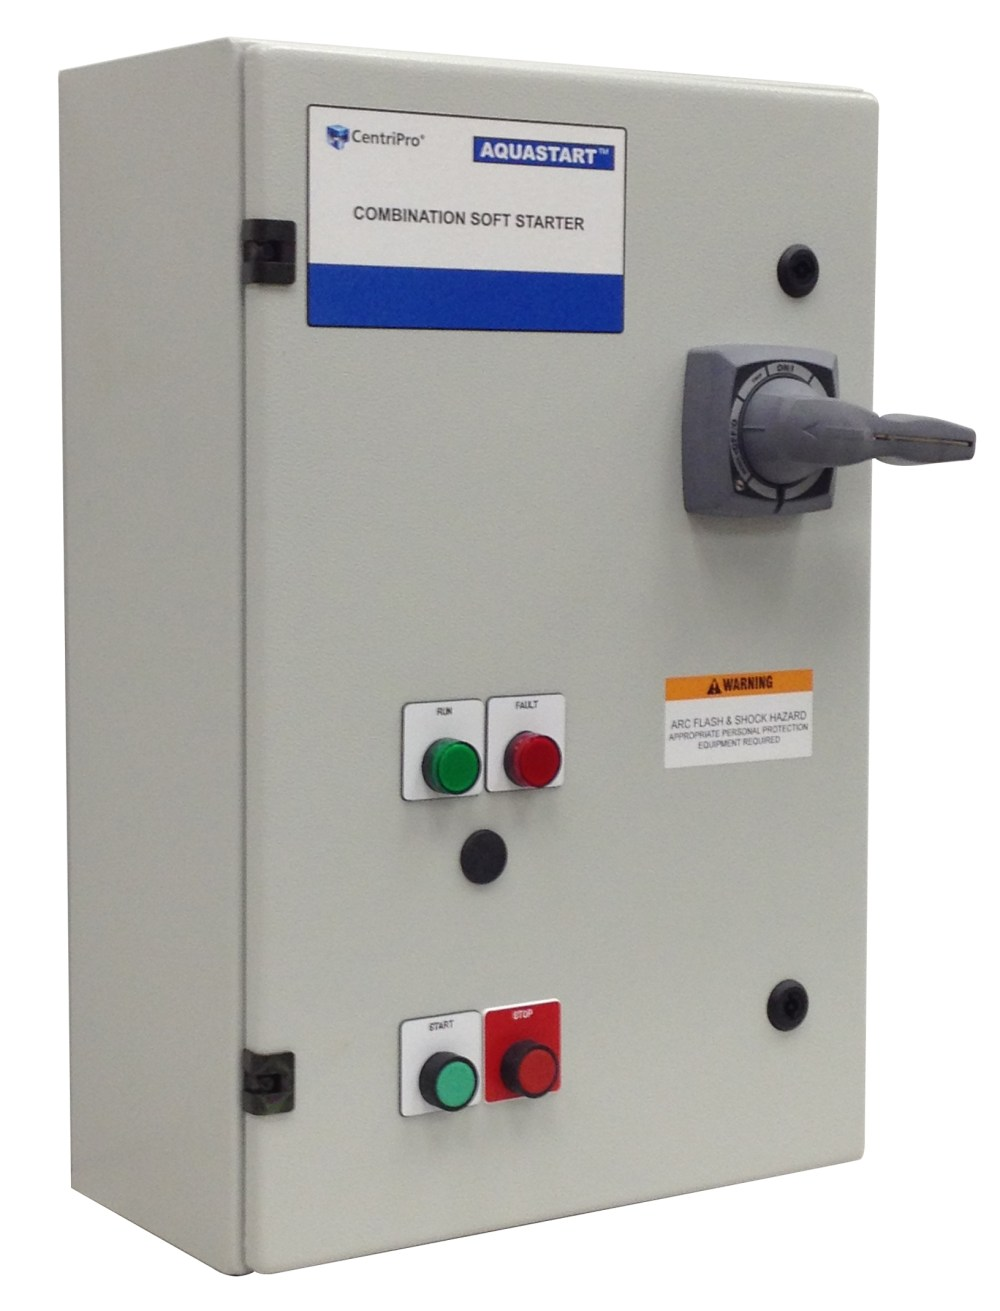 medium resolution of aquastart combination soft starters